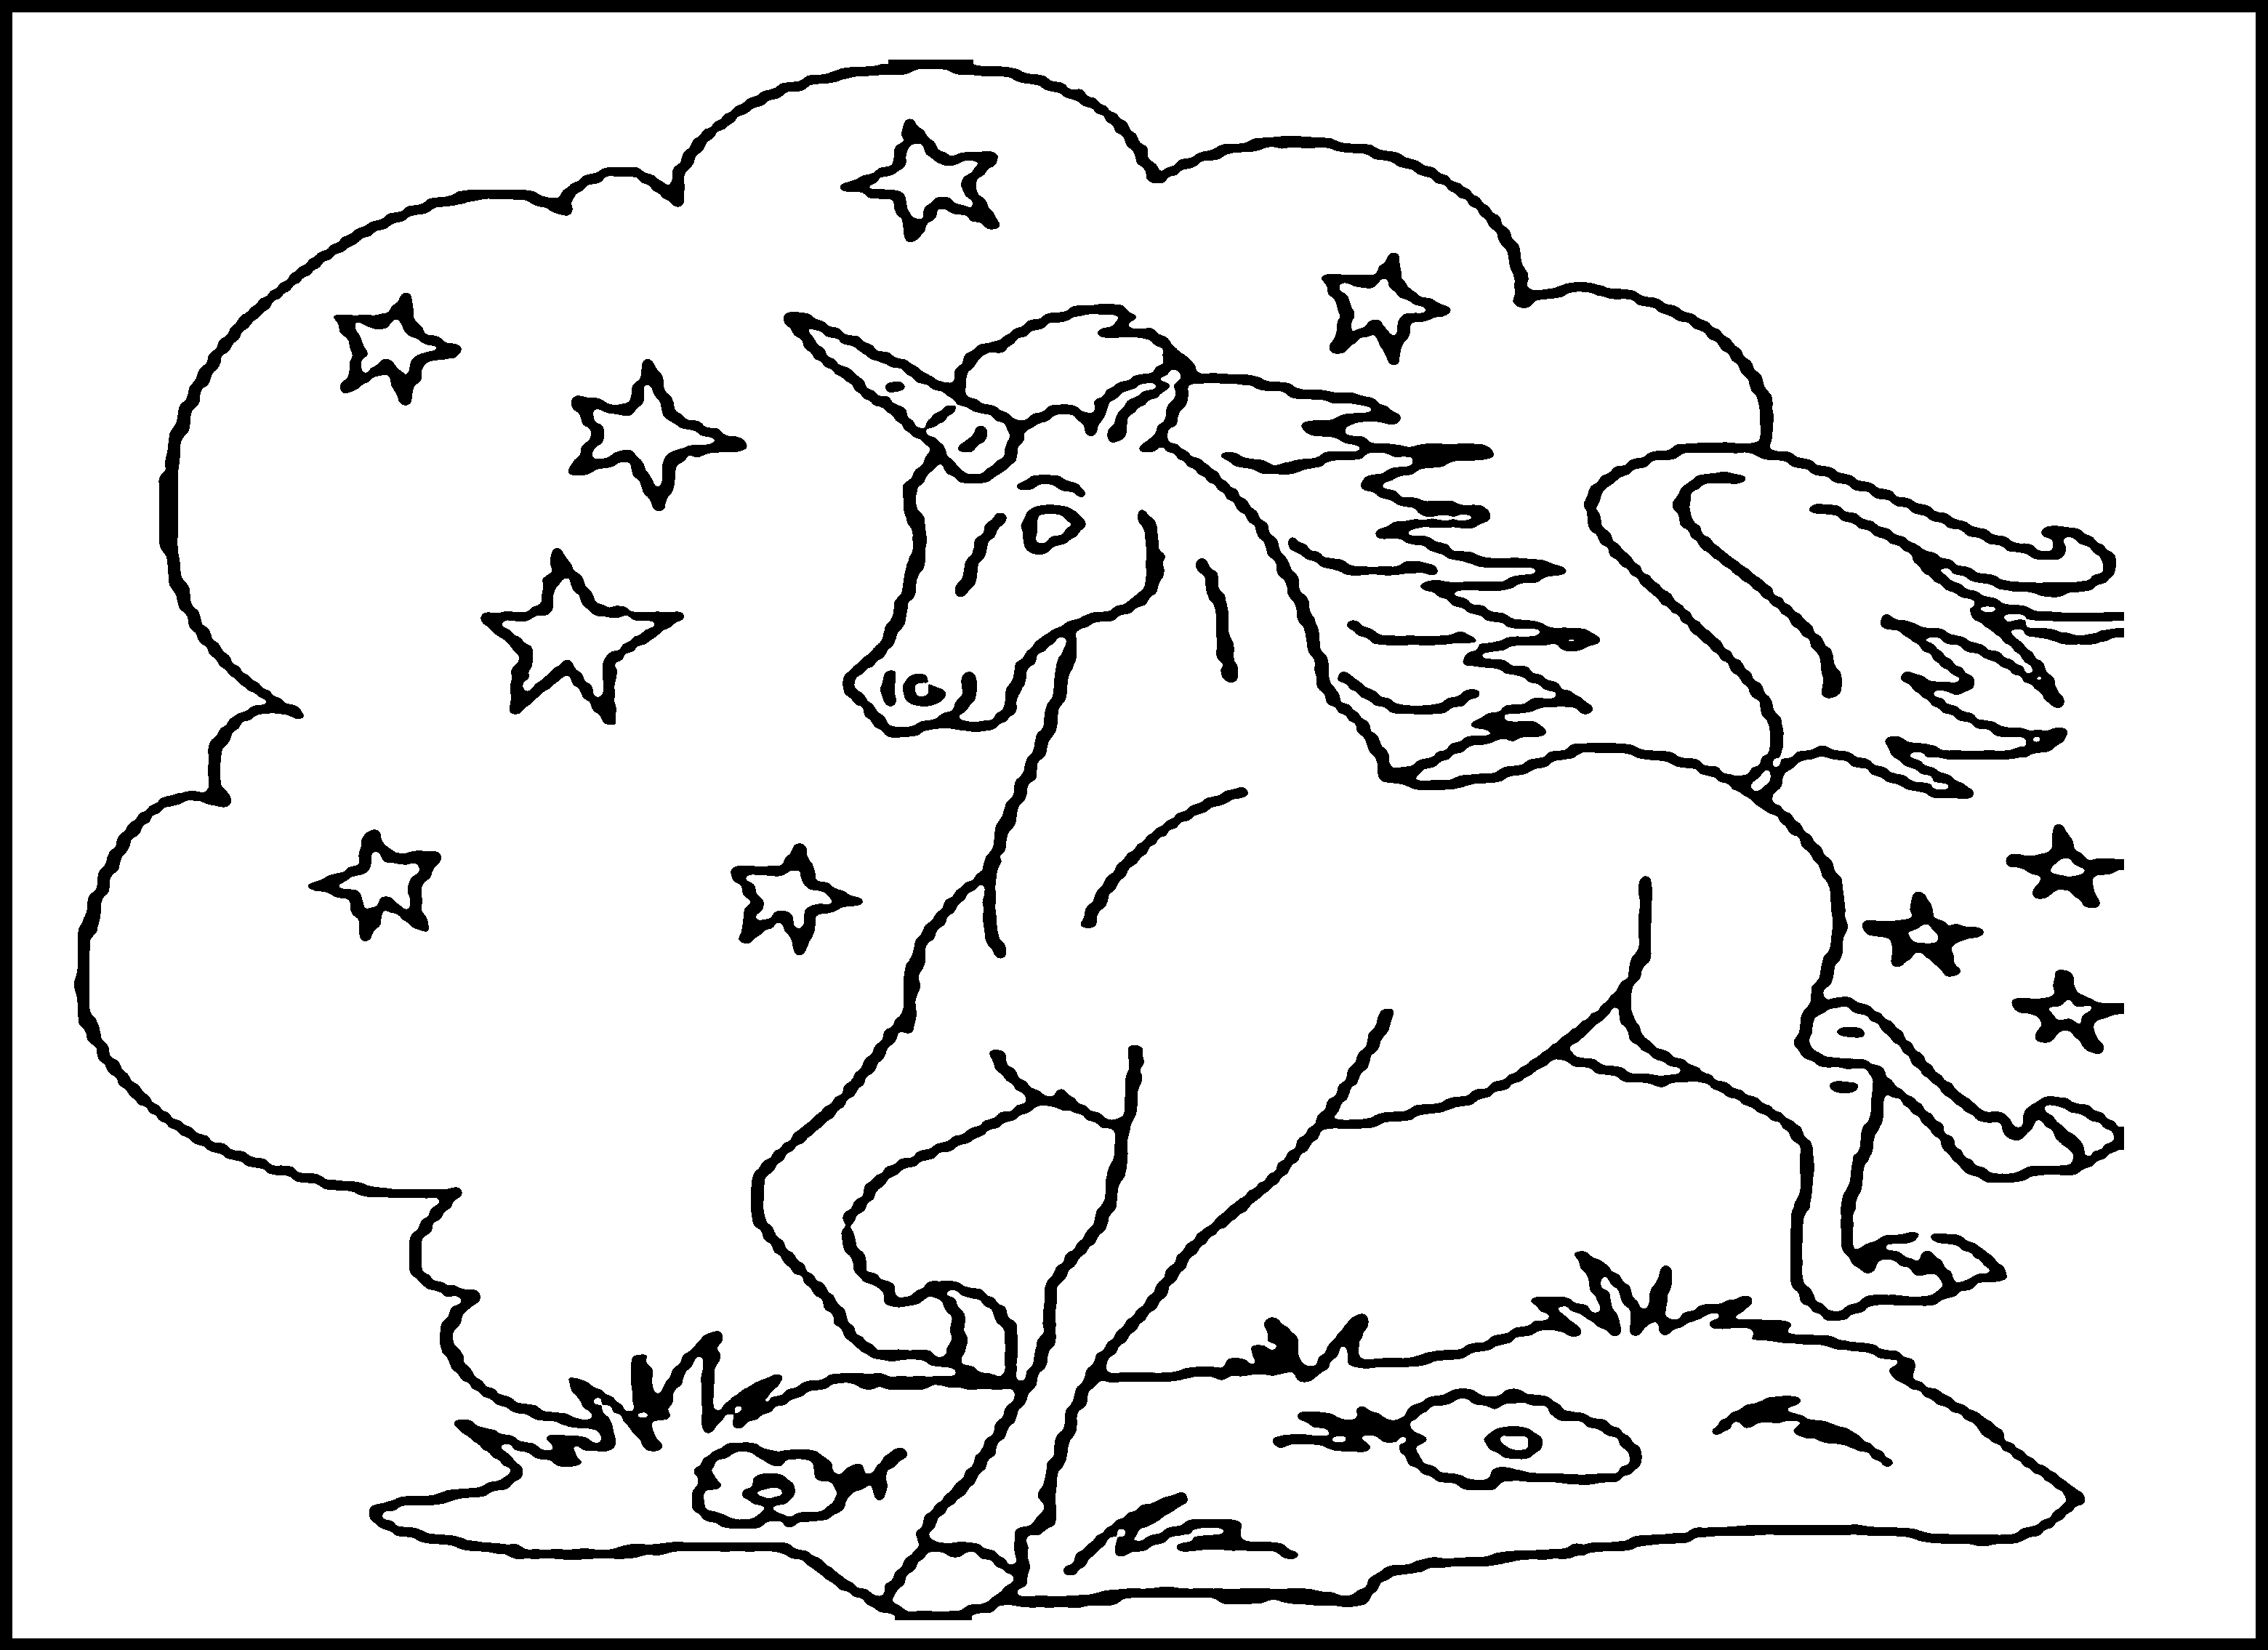 Coloring Pages You Can Color On The Computer At Getdrawings Free Download